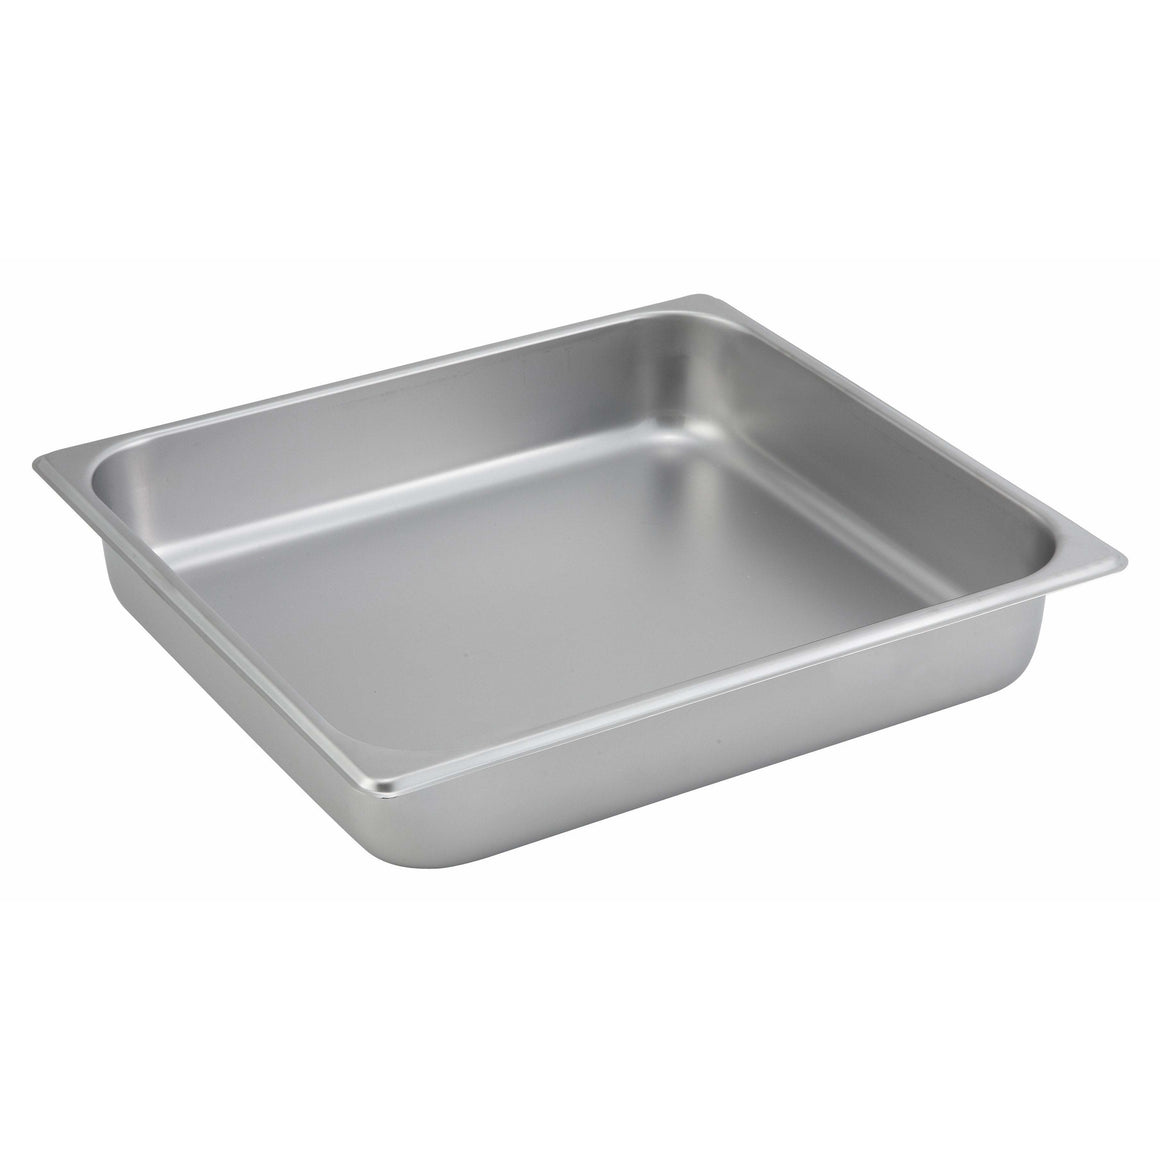 "Winco - SPTT2 - Straight-sided Steam Pan, 2/3 Size, 2-1/2"", 25 Ga Stainless Steel - Steam Table"